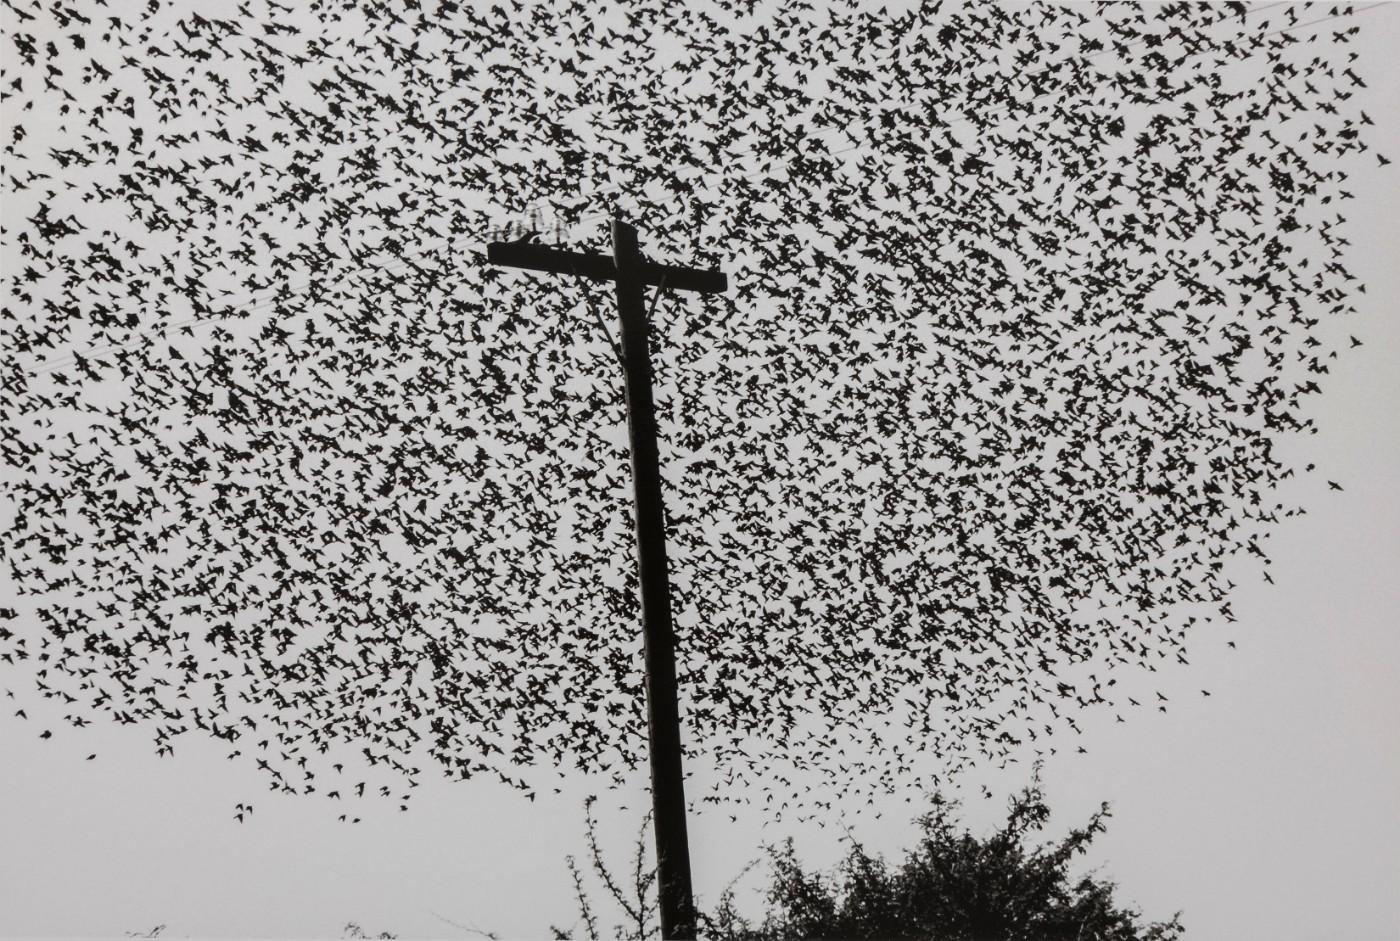 Graciela Iturbide, Birds on the Post, Highway / Pájaros en el poste, Carretera, Guanajuato, México, 1990